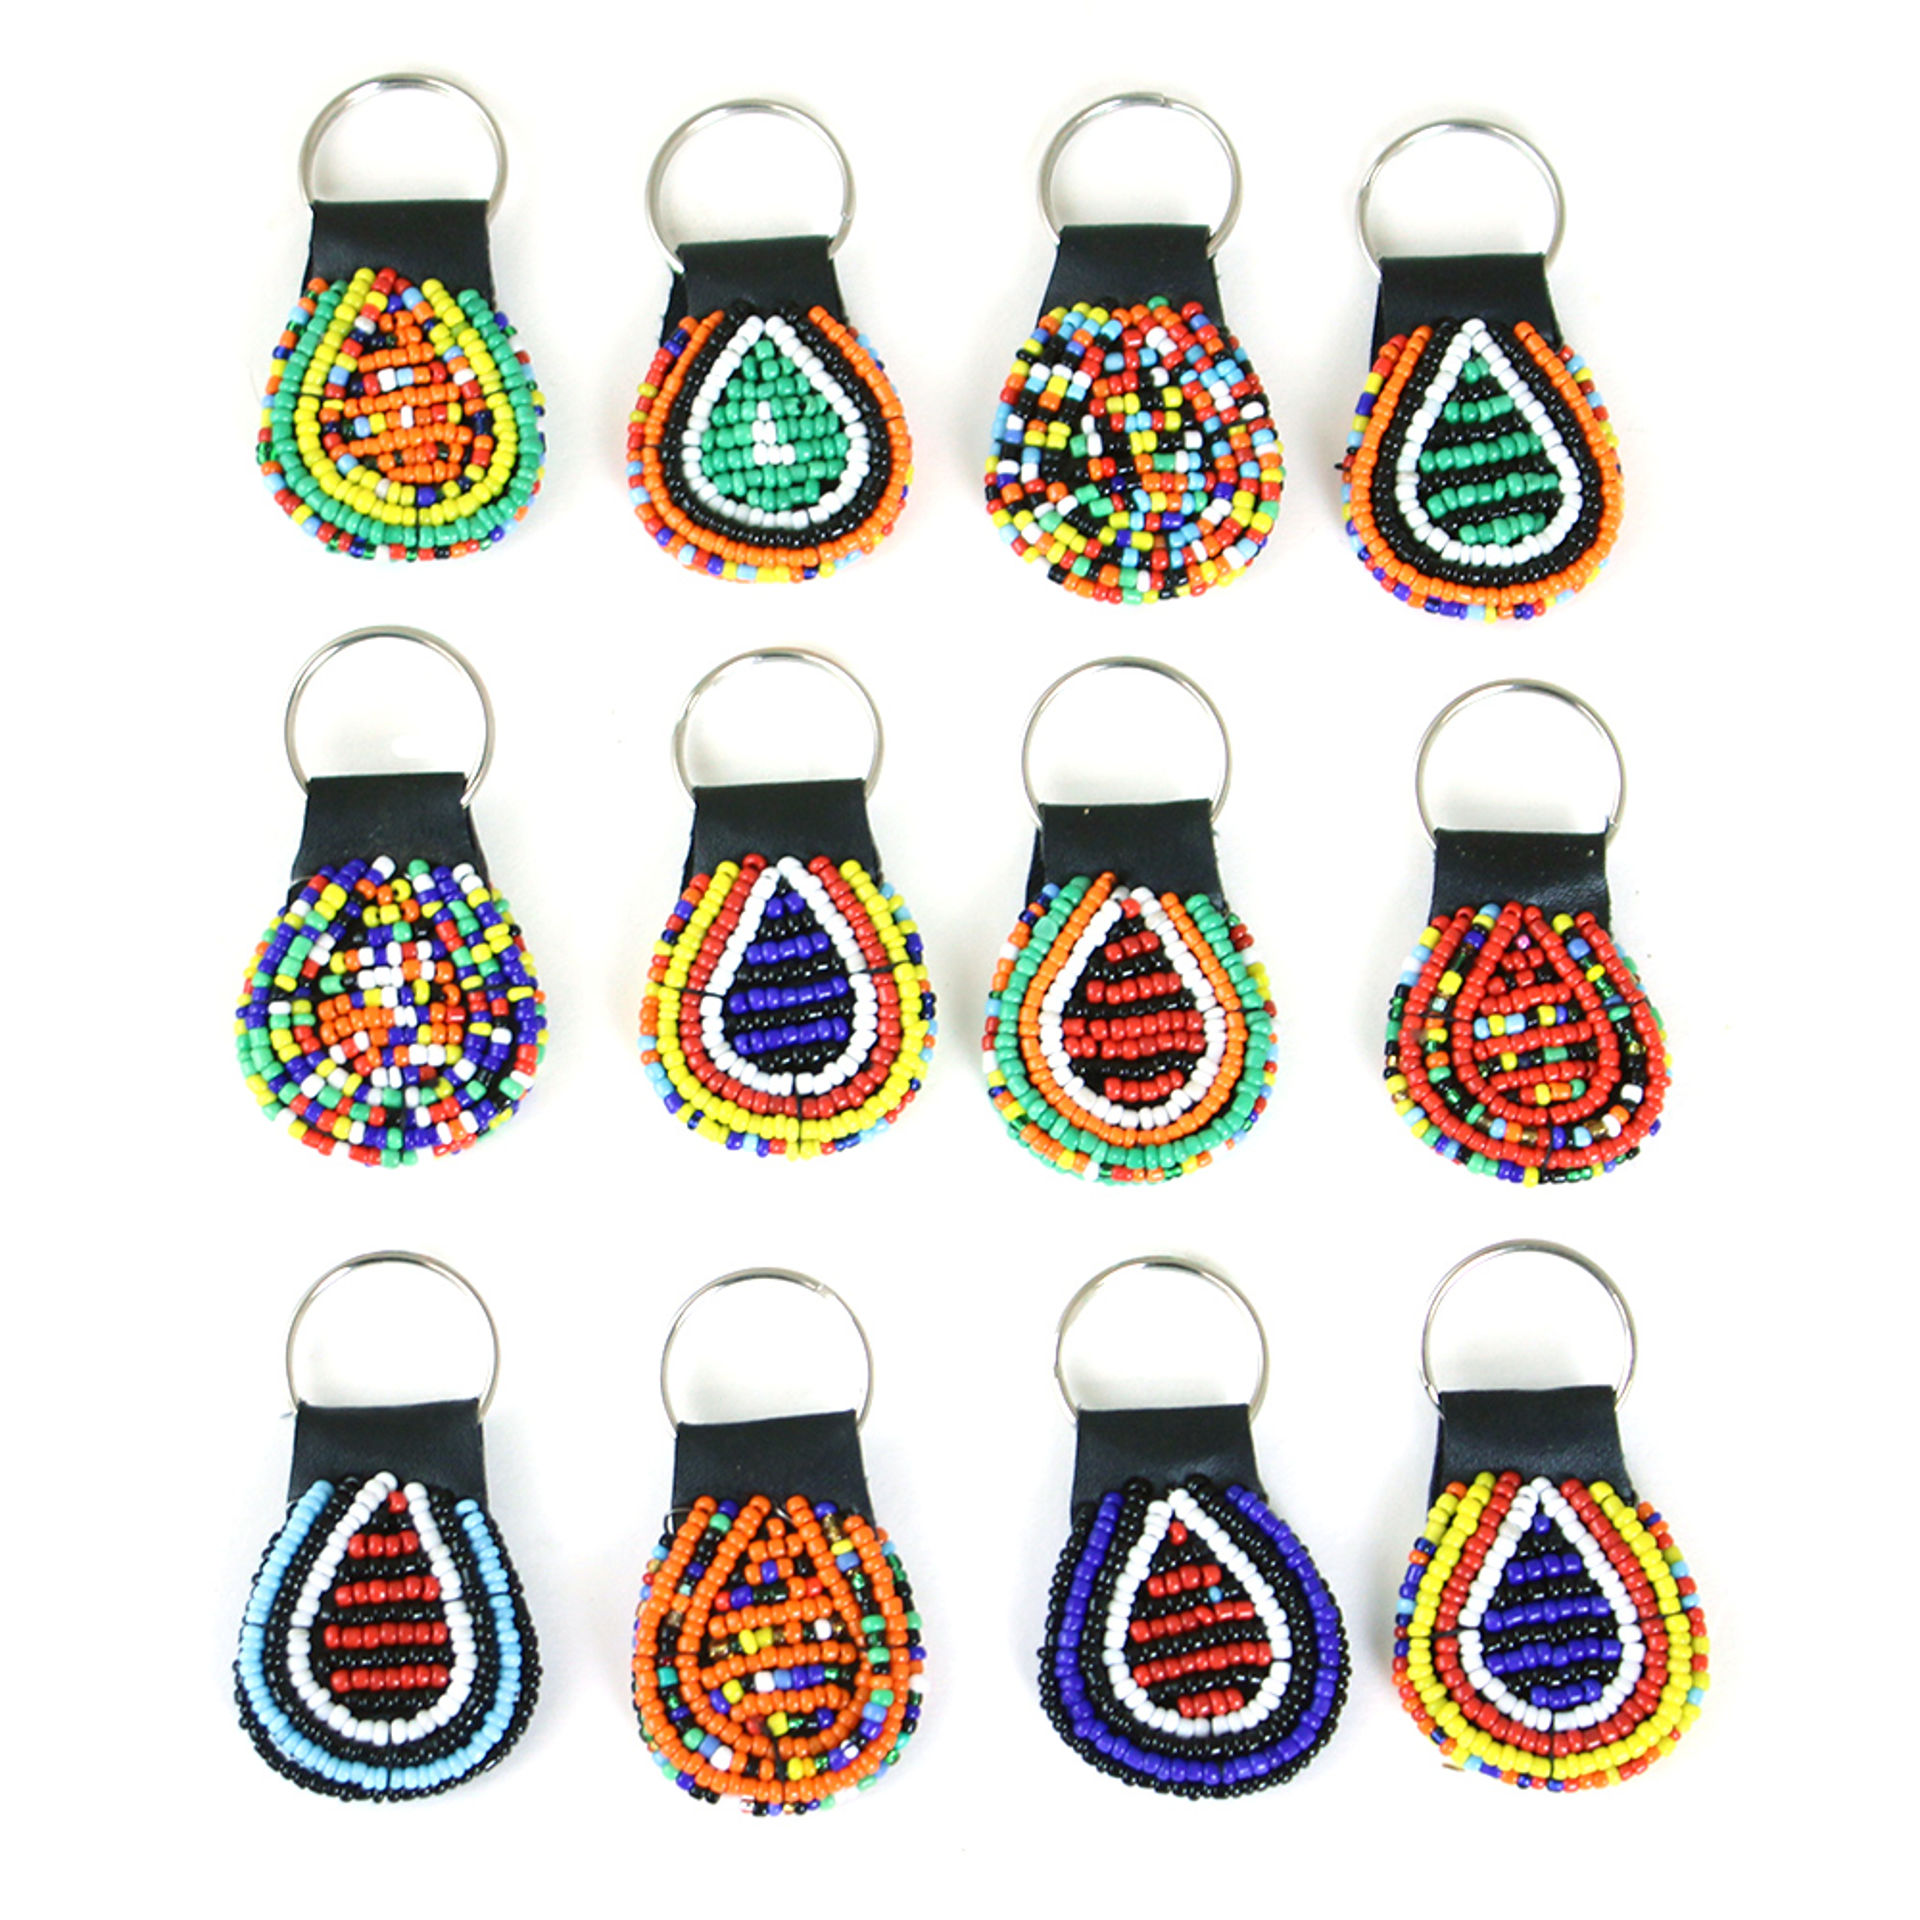 Picture of Set Of 12 Round Beaded Maasai Key Chains